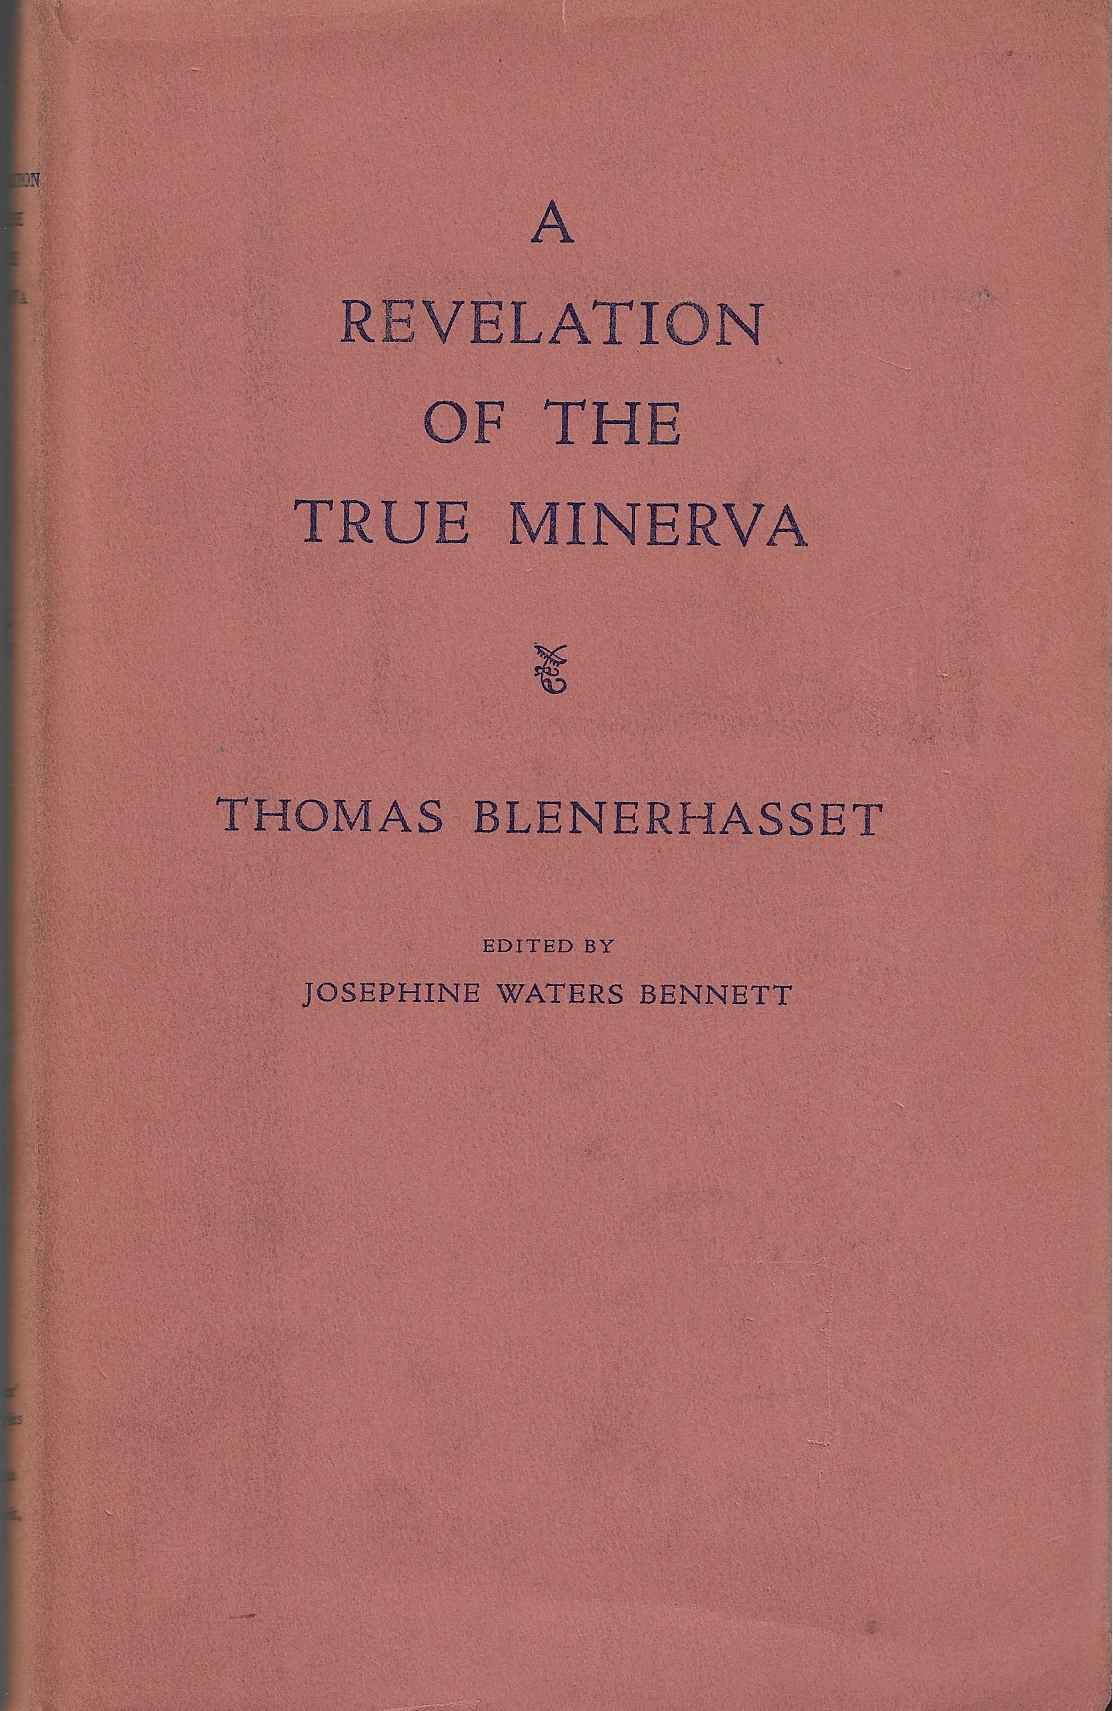 Image for A Revelation of the True Minerva